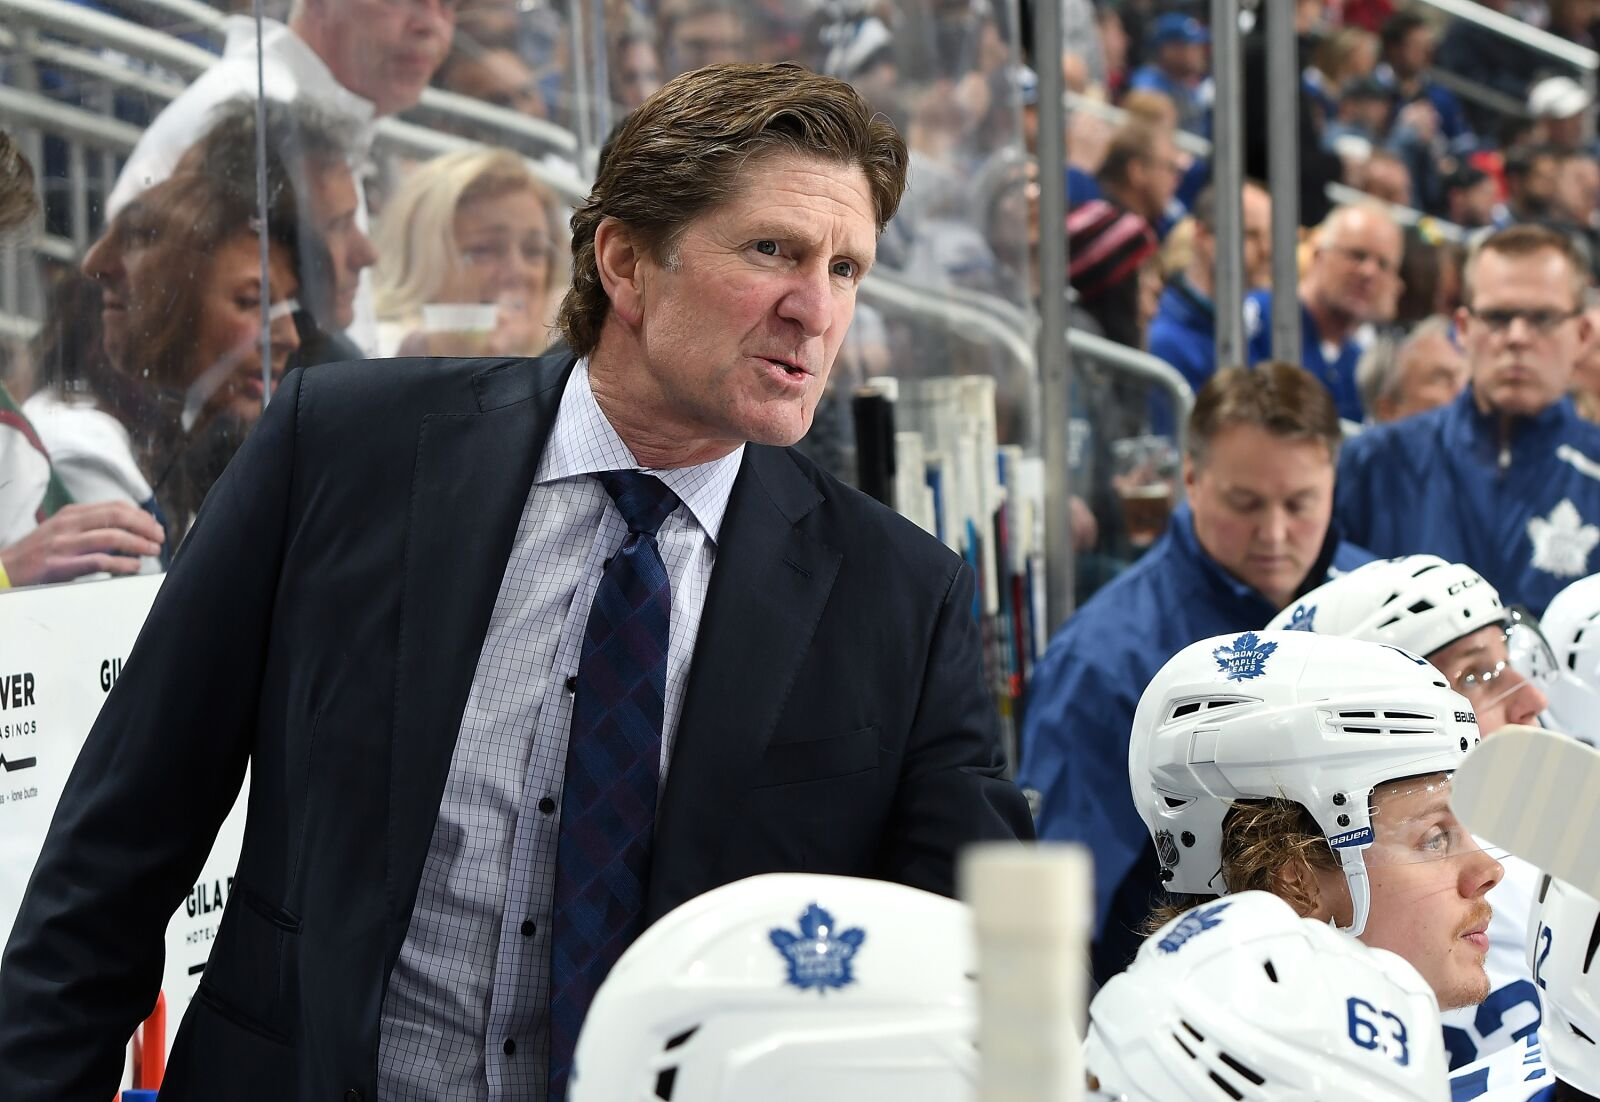 If The Toronto Maple Leafs Fire Mike Babcock, Where Could He Land?